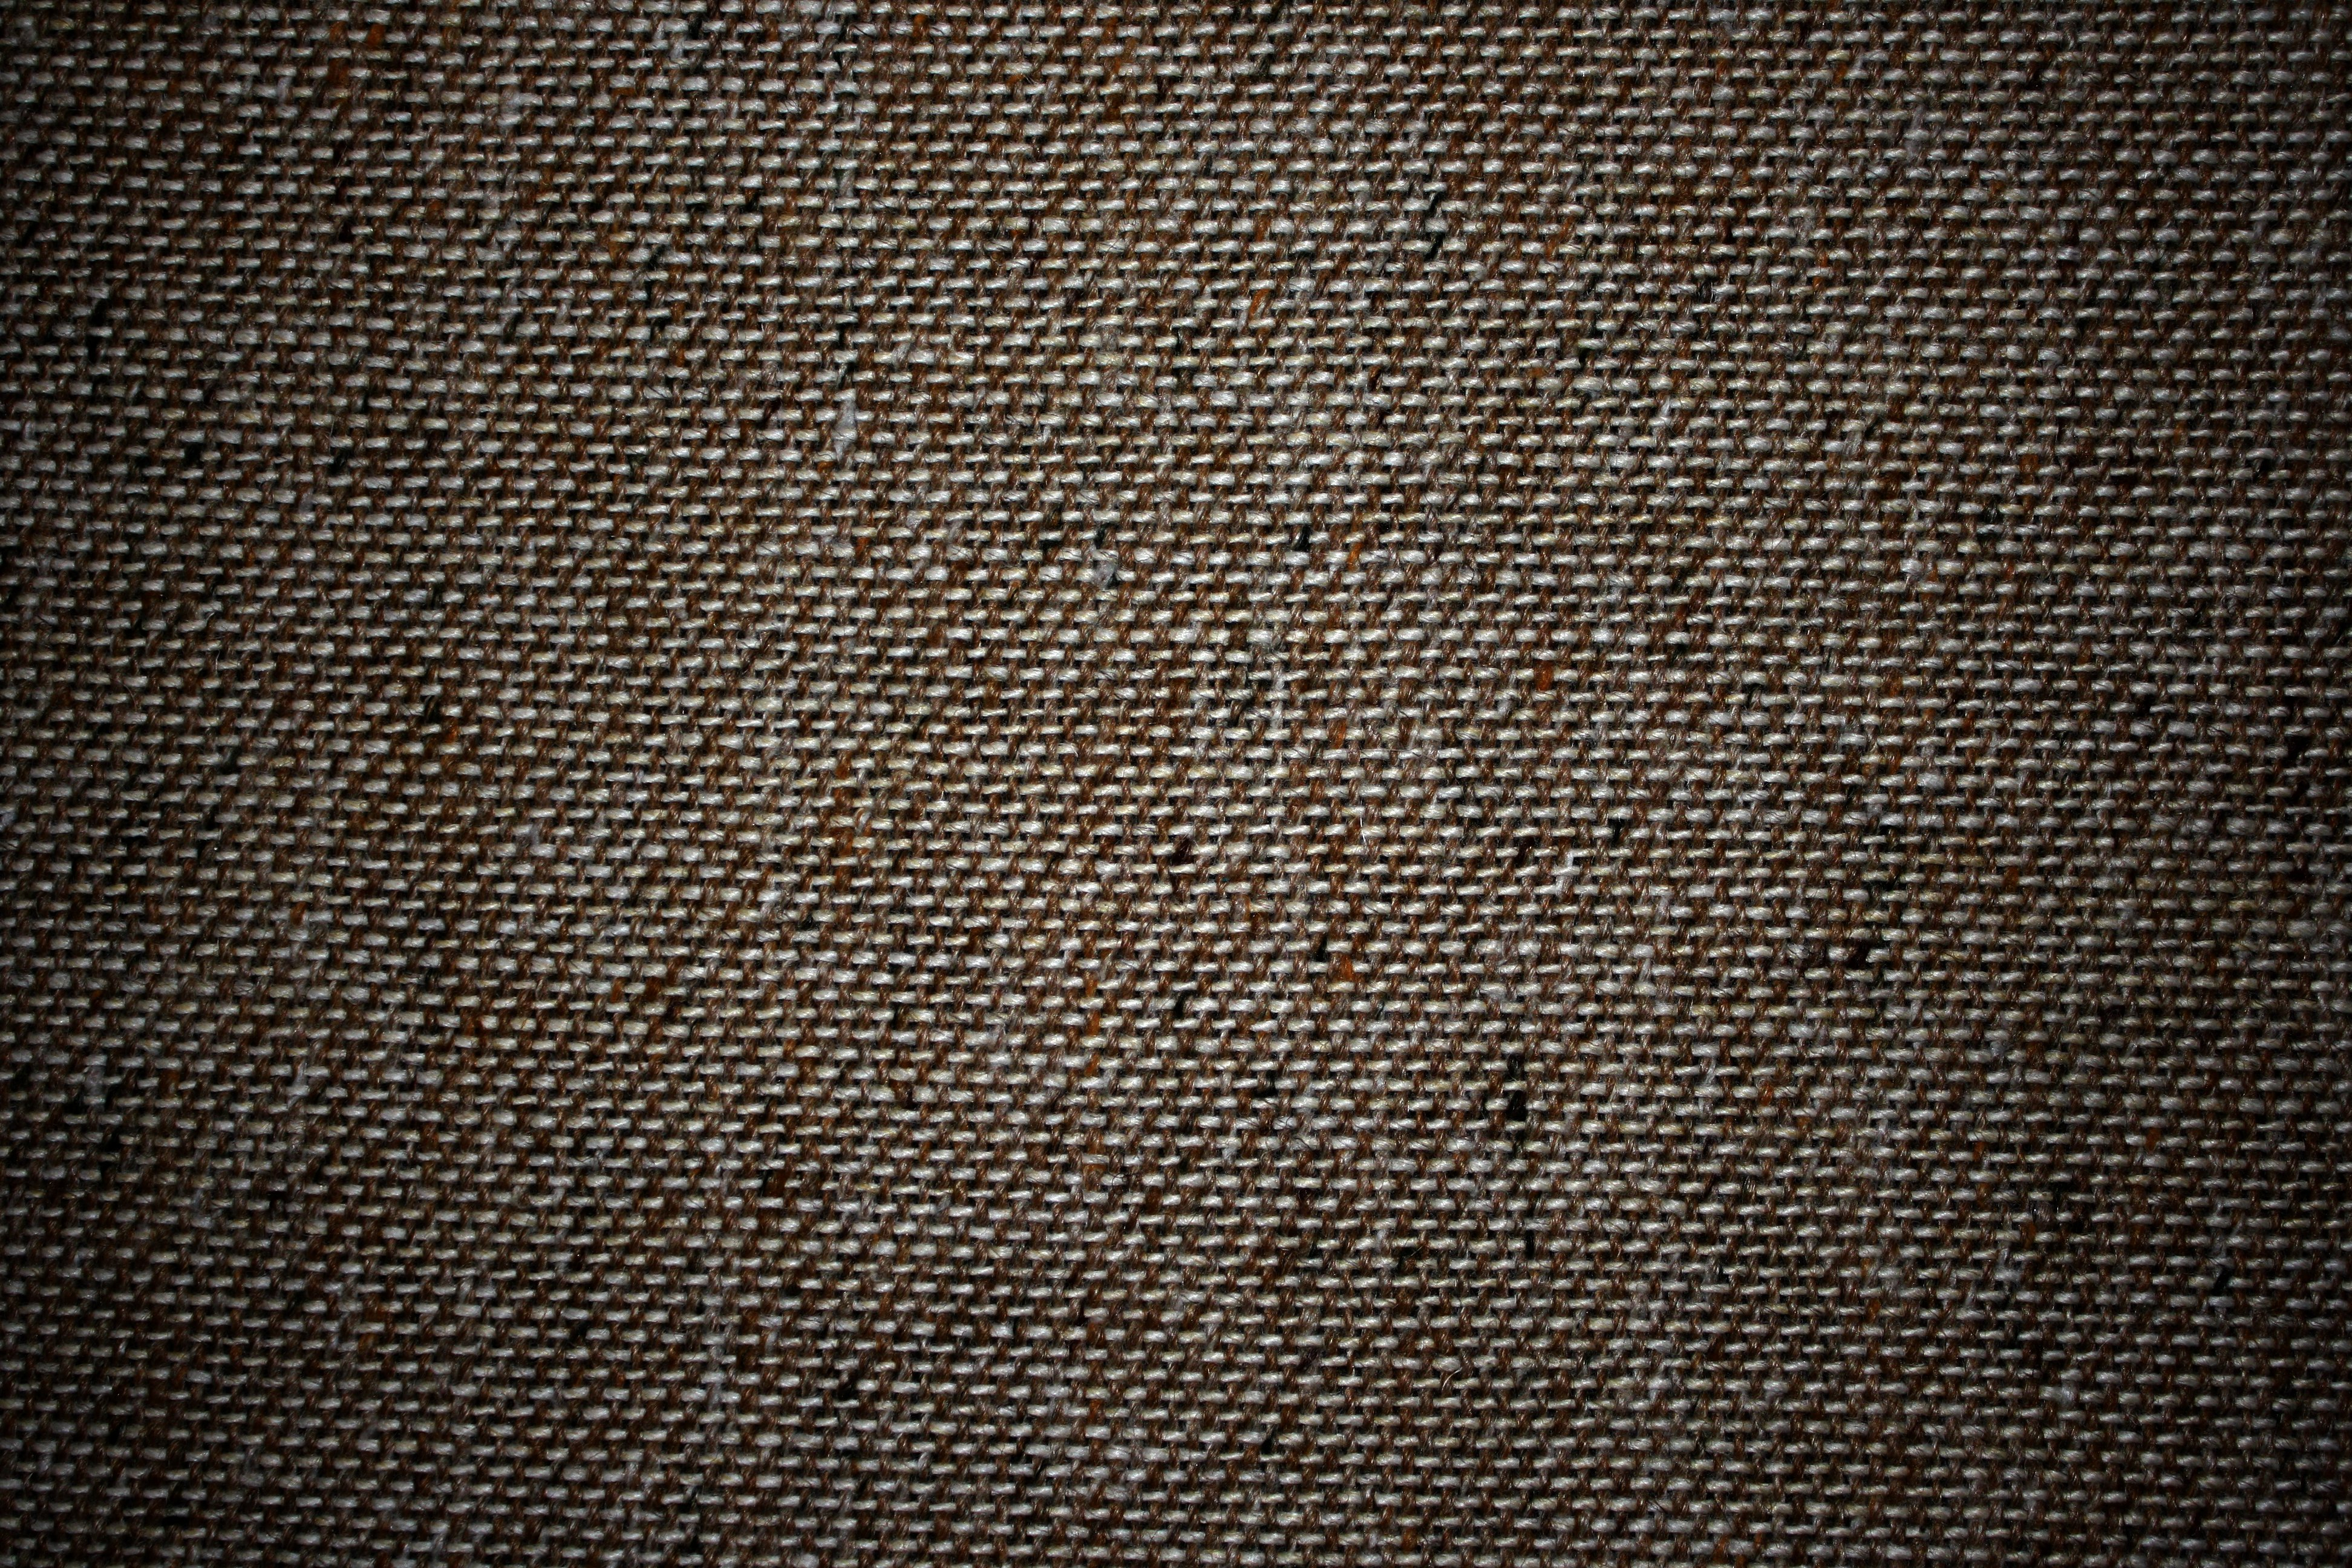 Dark Brown Upholstery Fabric Close Up Texture Picture